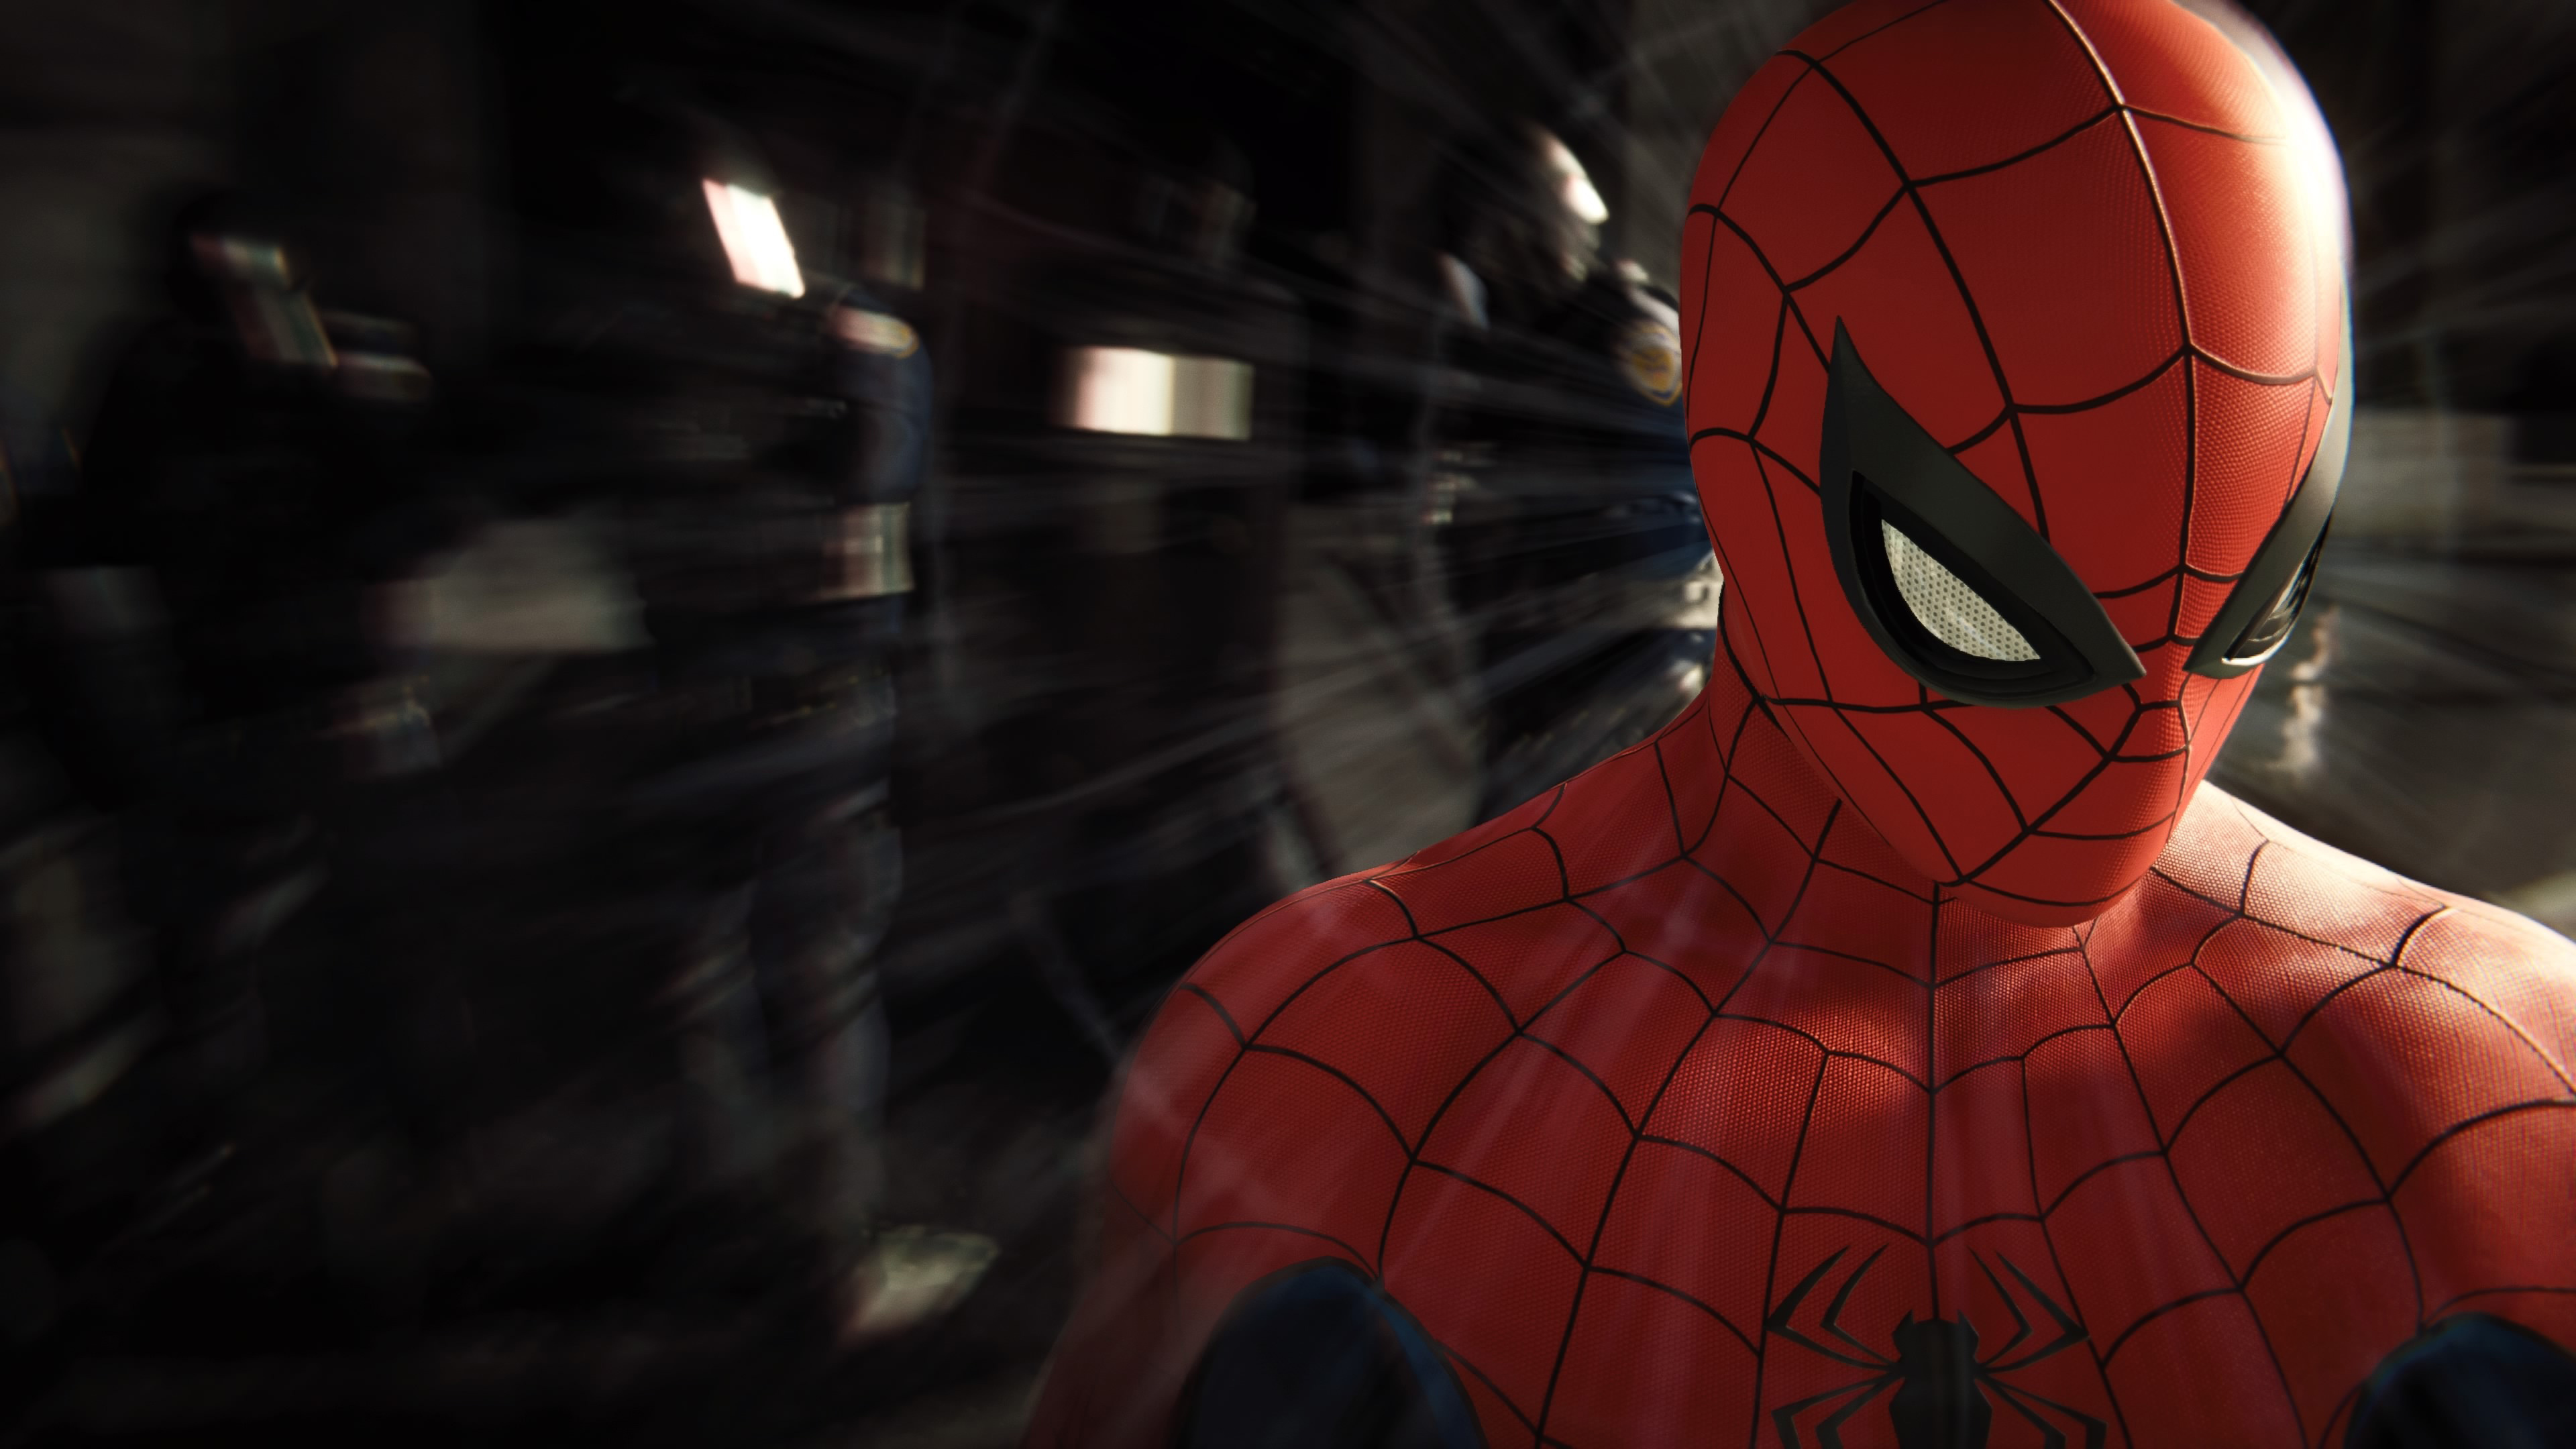 Spiderman PS4 4k Game, HD Games, 4k Wallpapers, Images ...